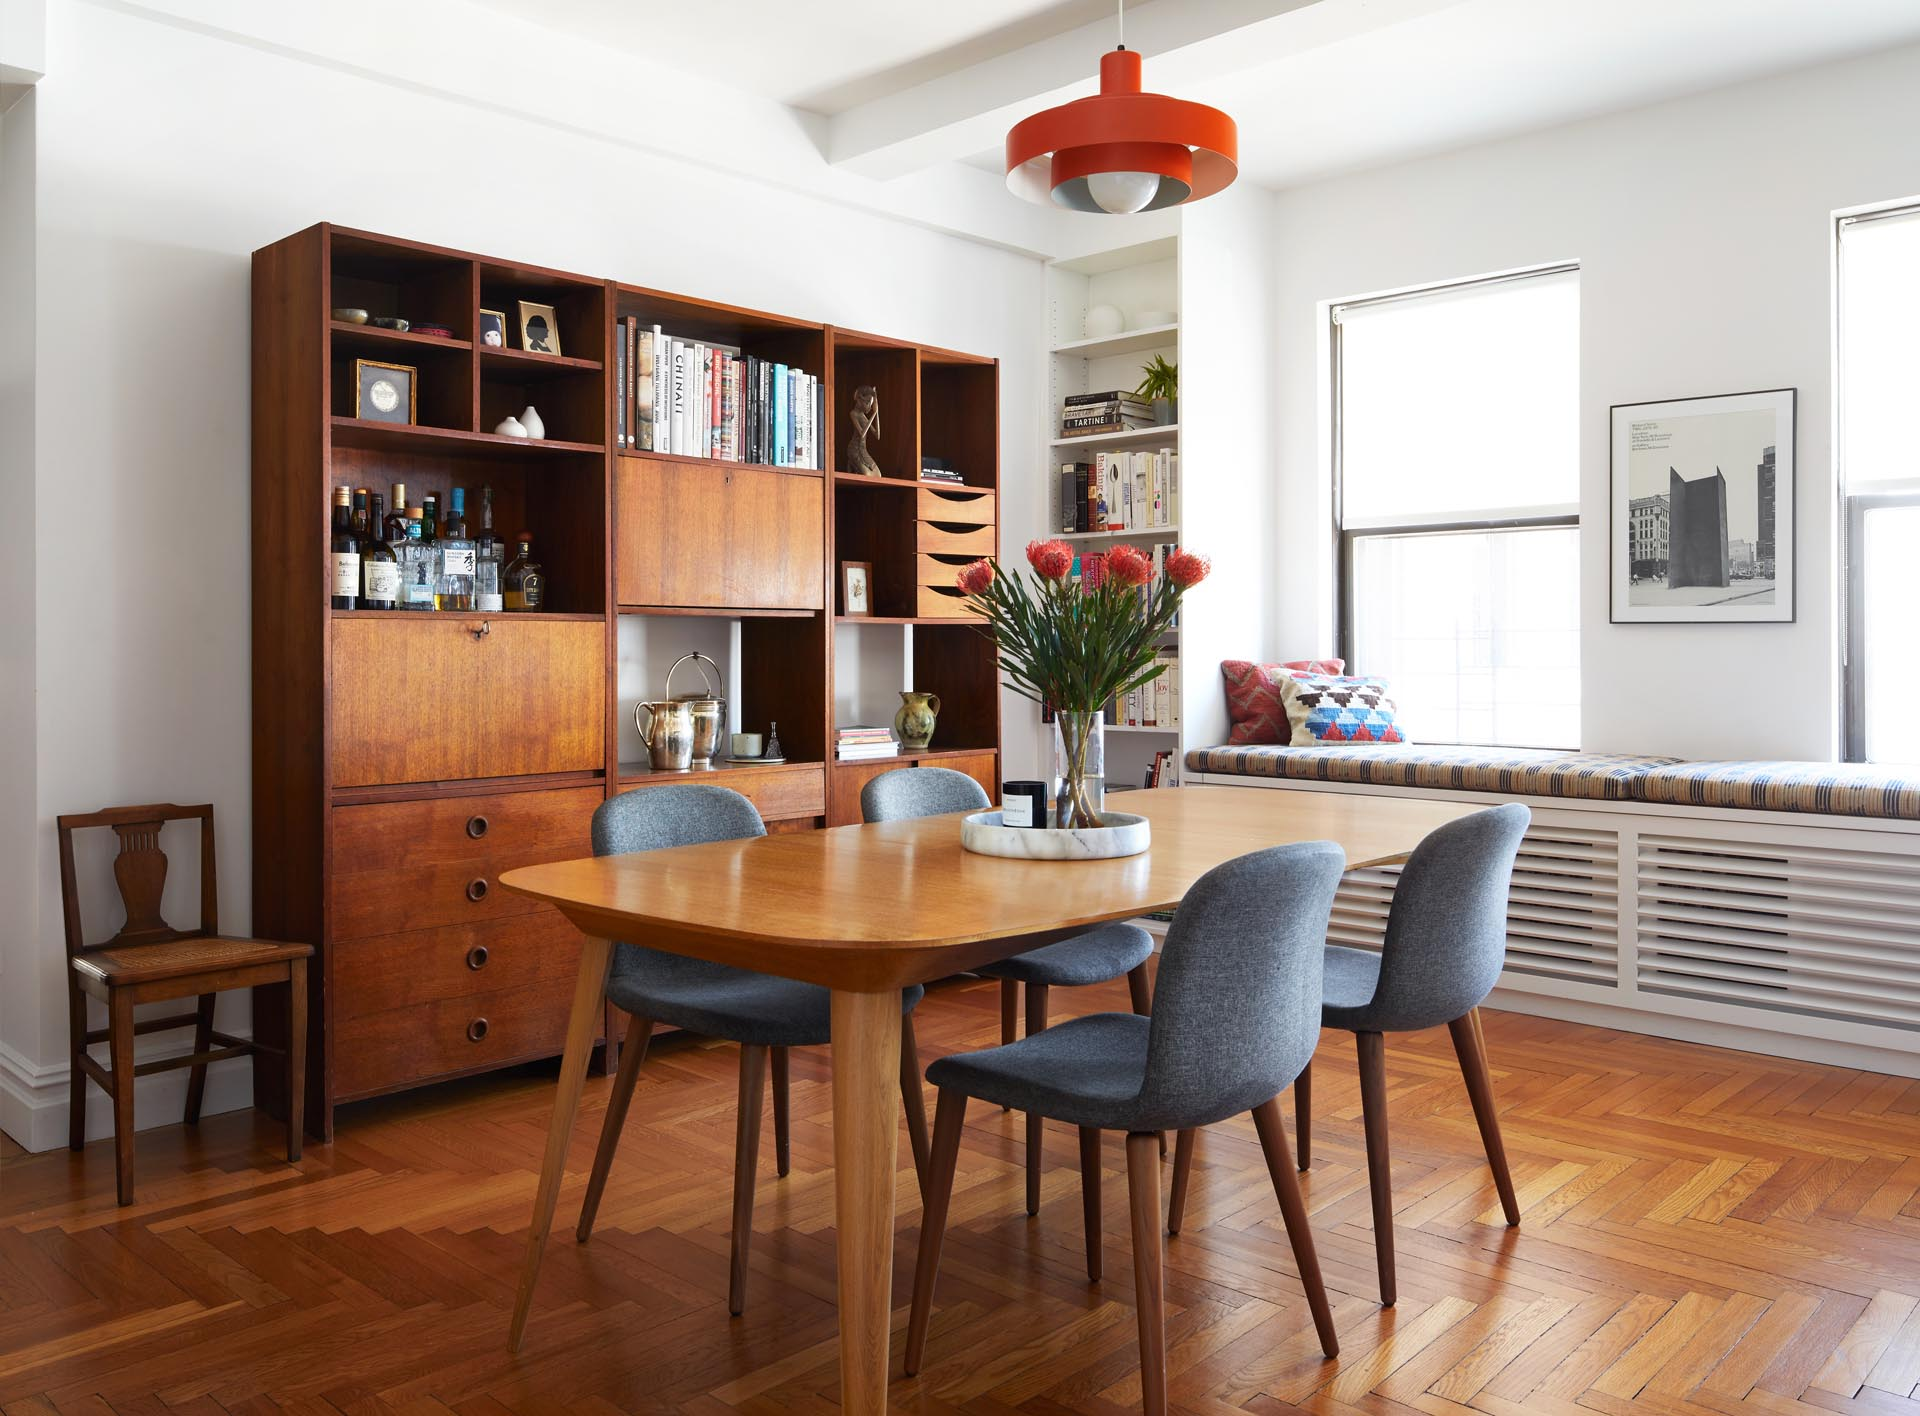 A remodeled dining room includes a deep orange pendant light from the the 1960s, a custom reading bench by the windows, and a vintage Danish media cabinet